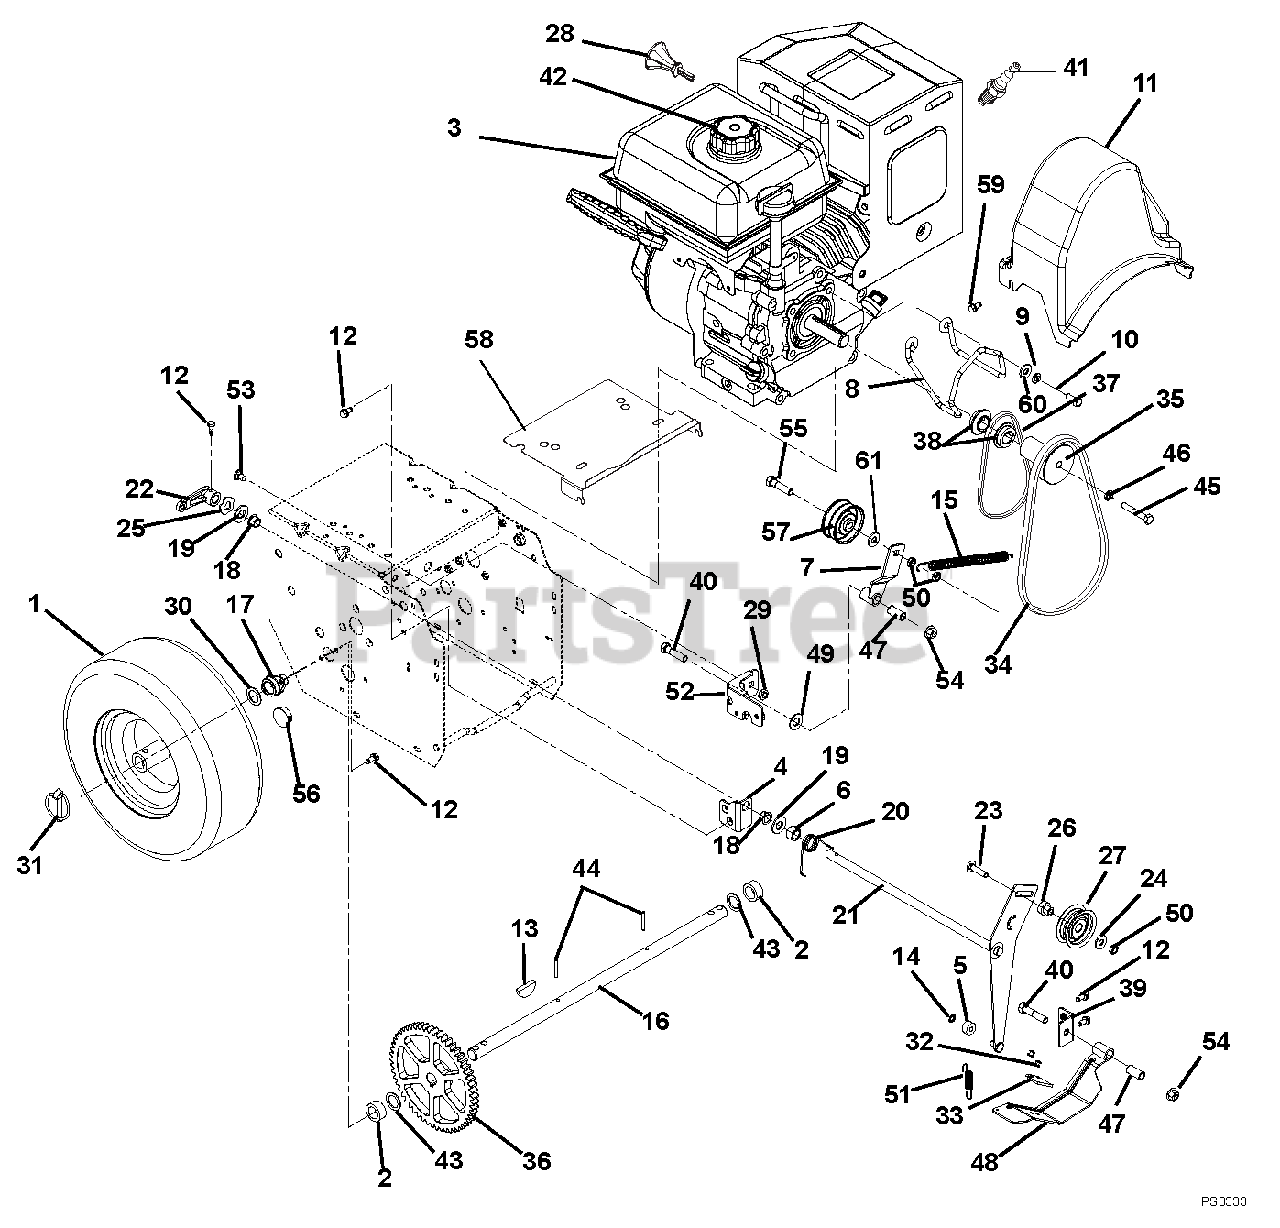 Ariens Parts On The Engine And Belt Drive Diagram For